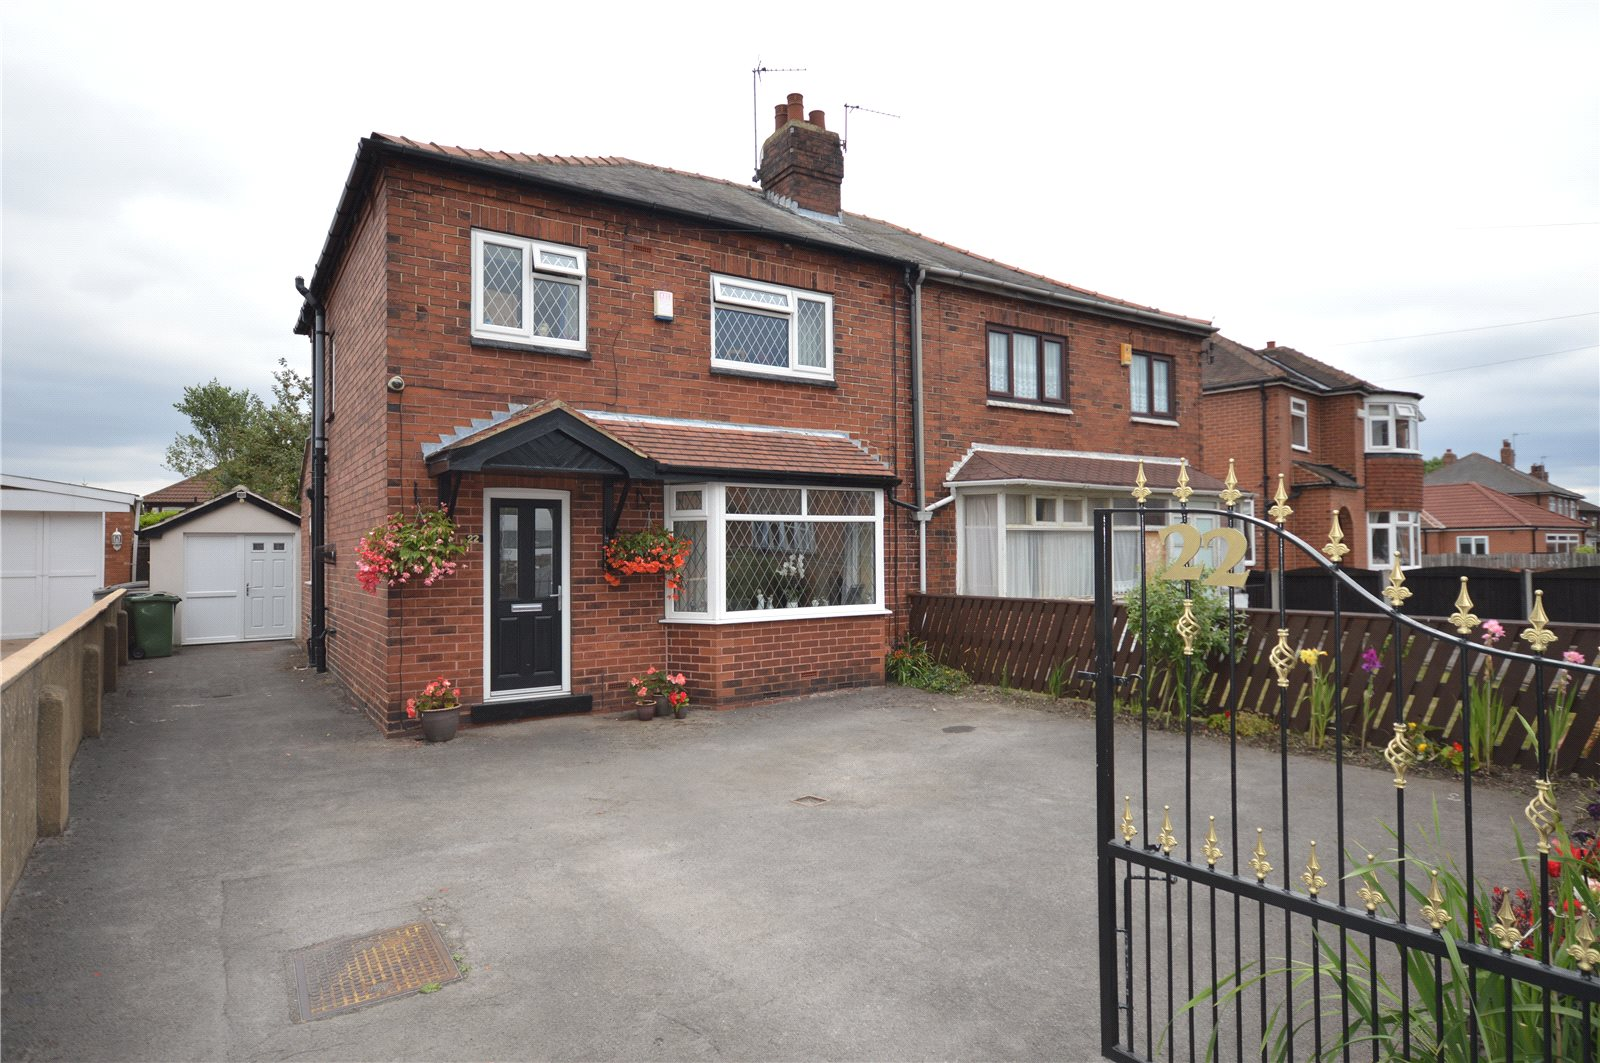 Property for sale in Beeston, exterior of home red brick